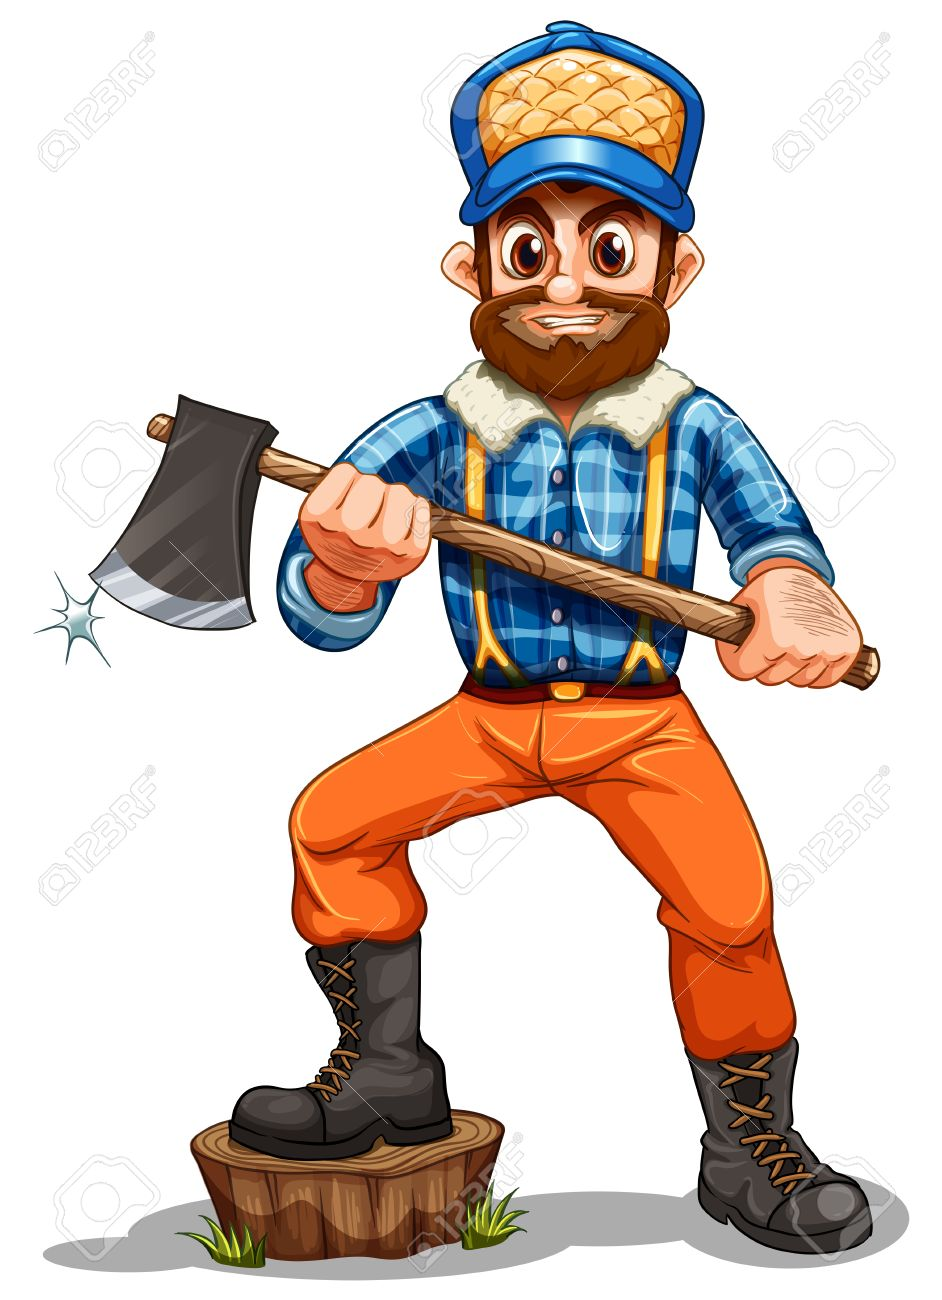 Illustration of a lumberjack stepping on a stump on a white background Stock Vector - 22210969